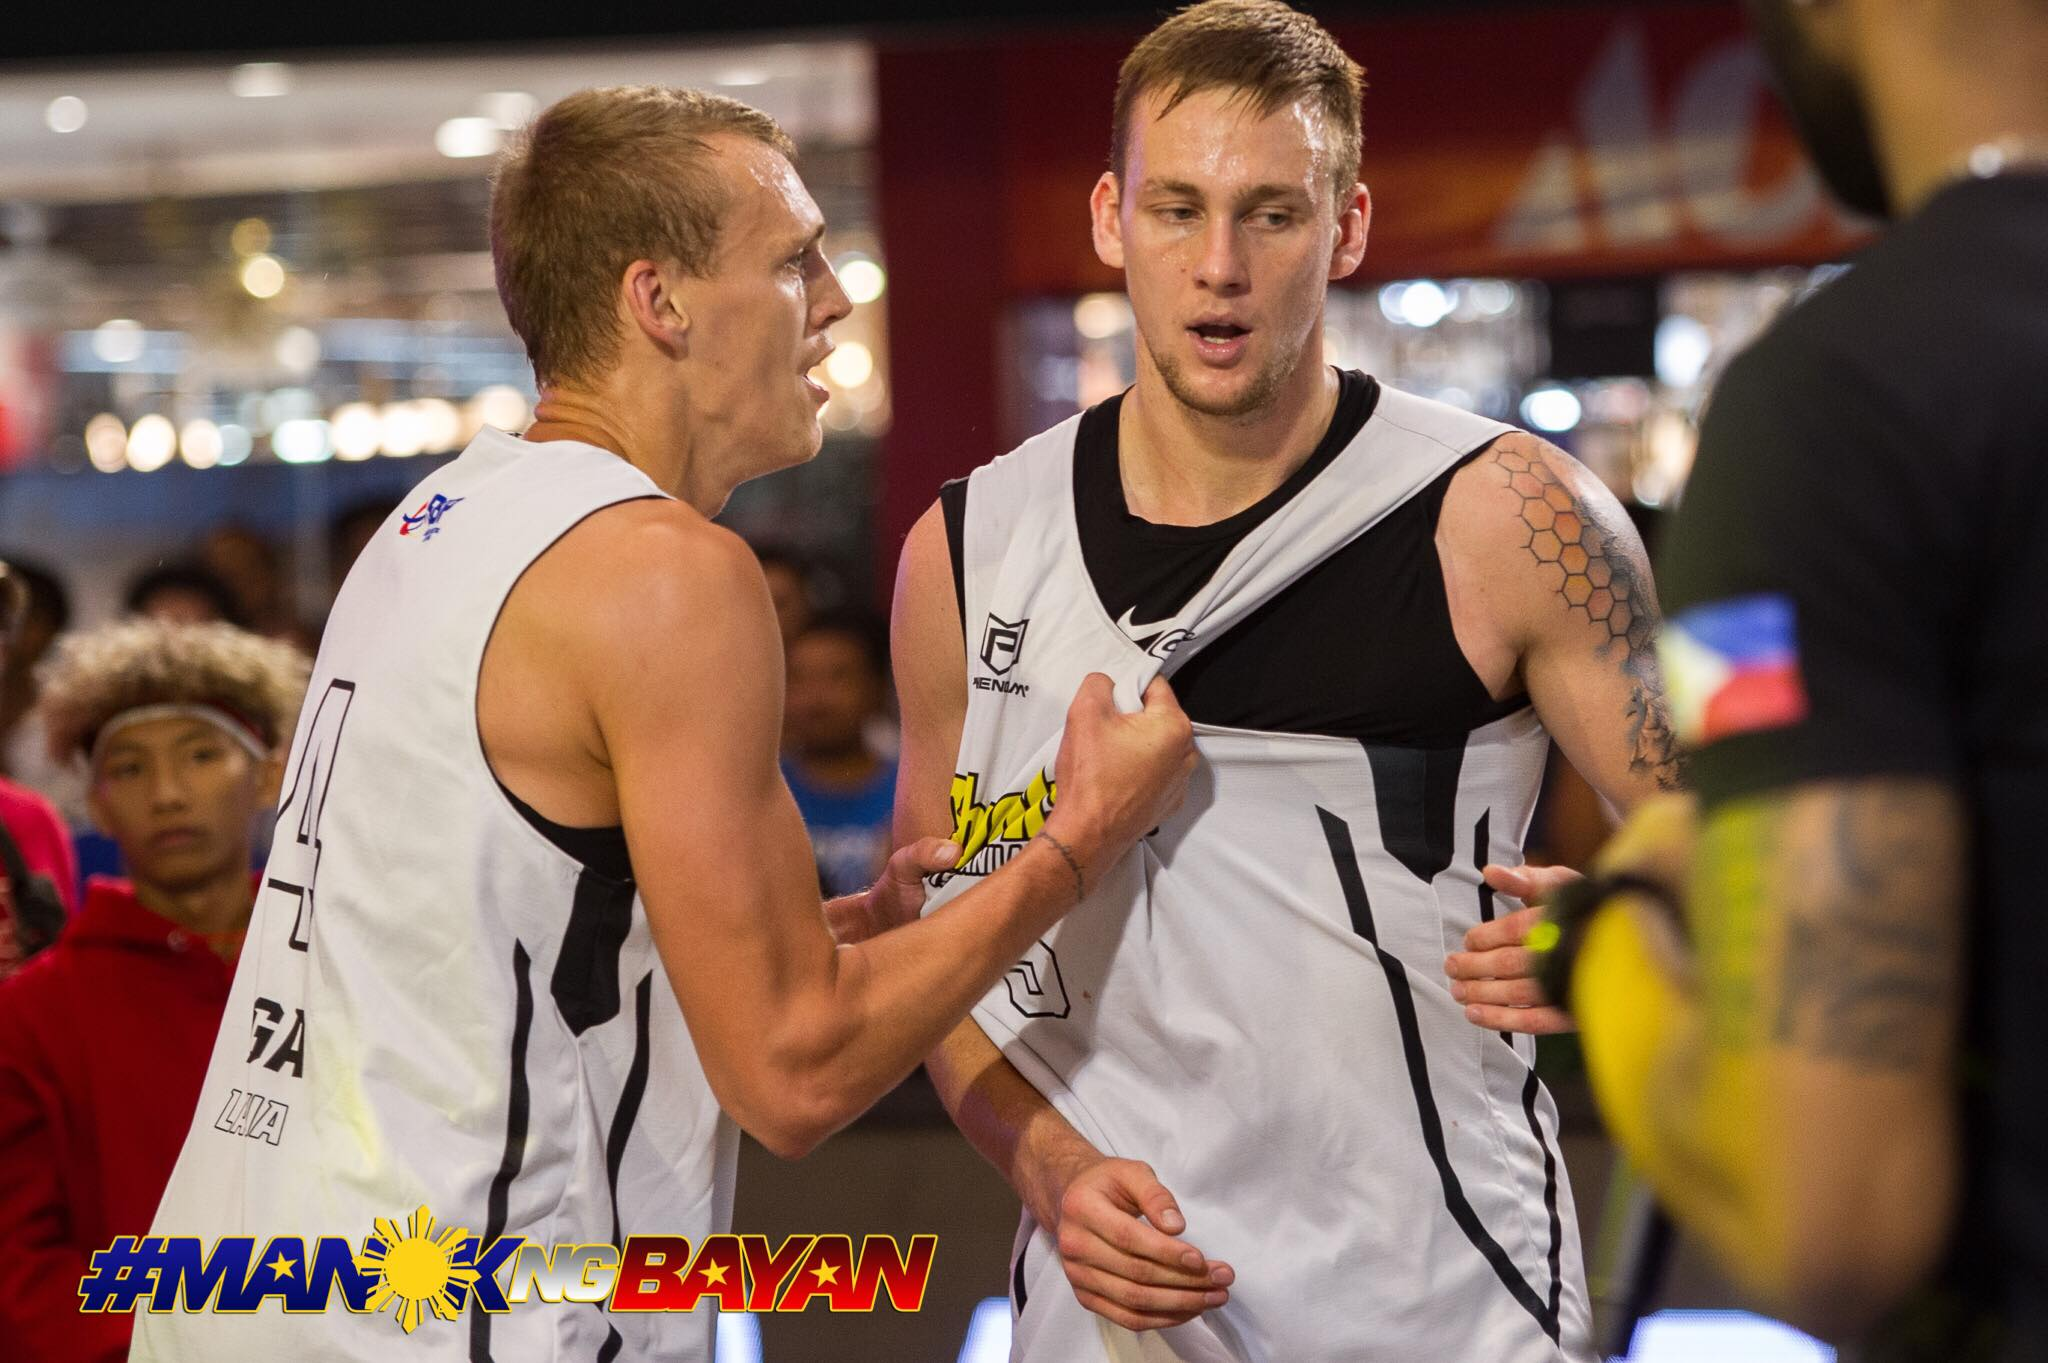 Tiebreaker Times Karlis Lasmanis believes PH has best crowd: 'The people have something special' 3x3 Basketball Chooks-to-Go Pilipinas 3x3 News  Riga Ghetto Karlis Lasmanis 2019 Chooks-to-Go Pilipinas 3x3 Season 2019 Chooks-to-Go Manila Challenger